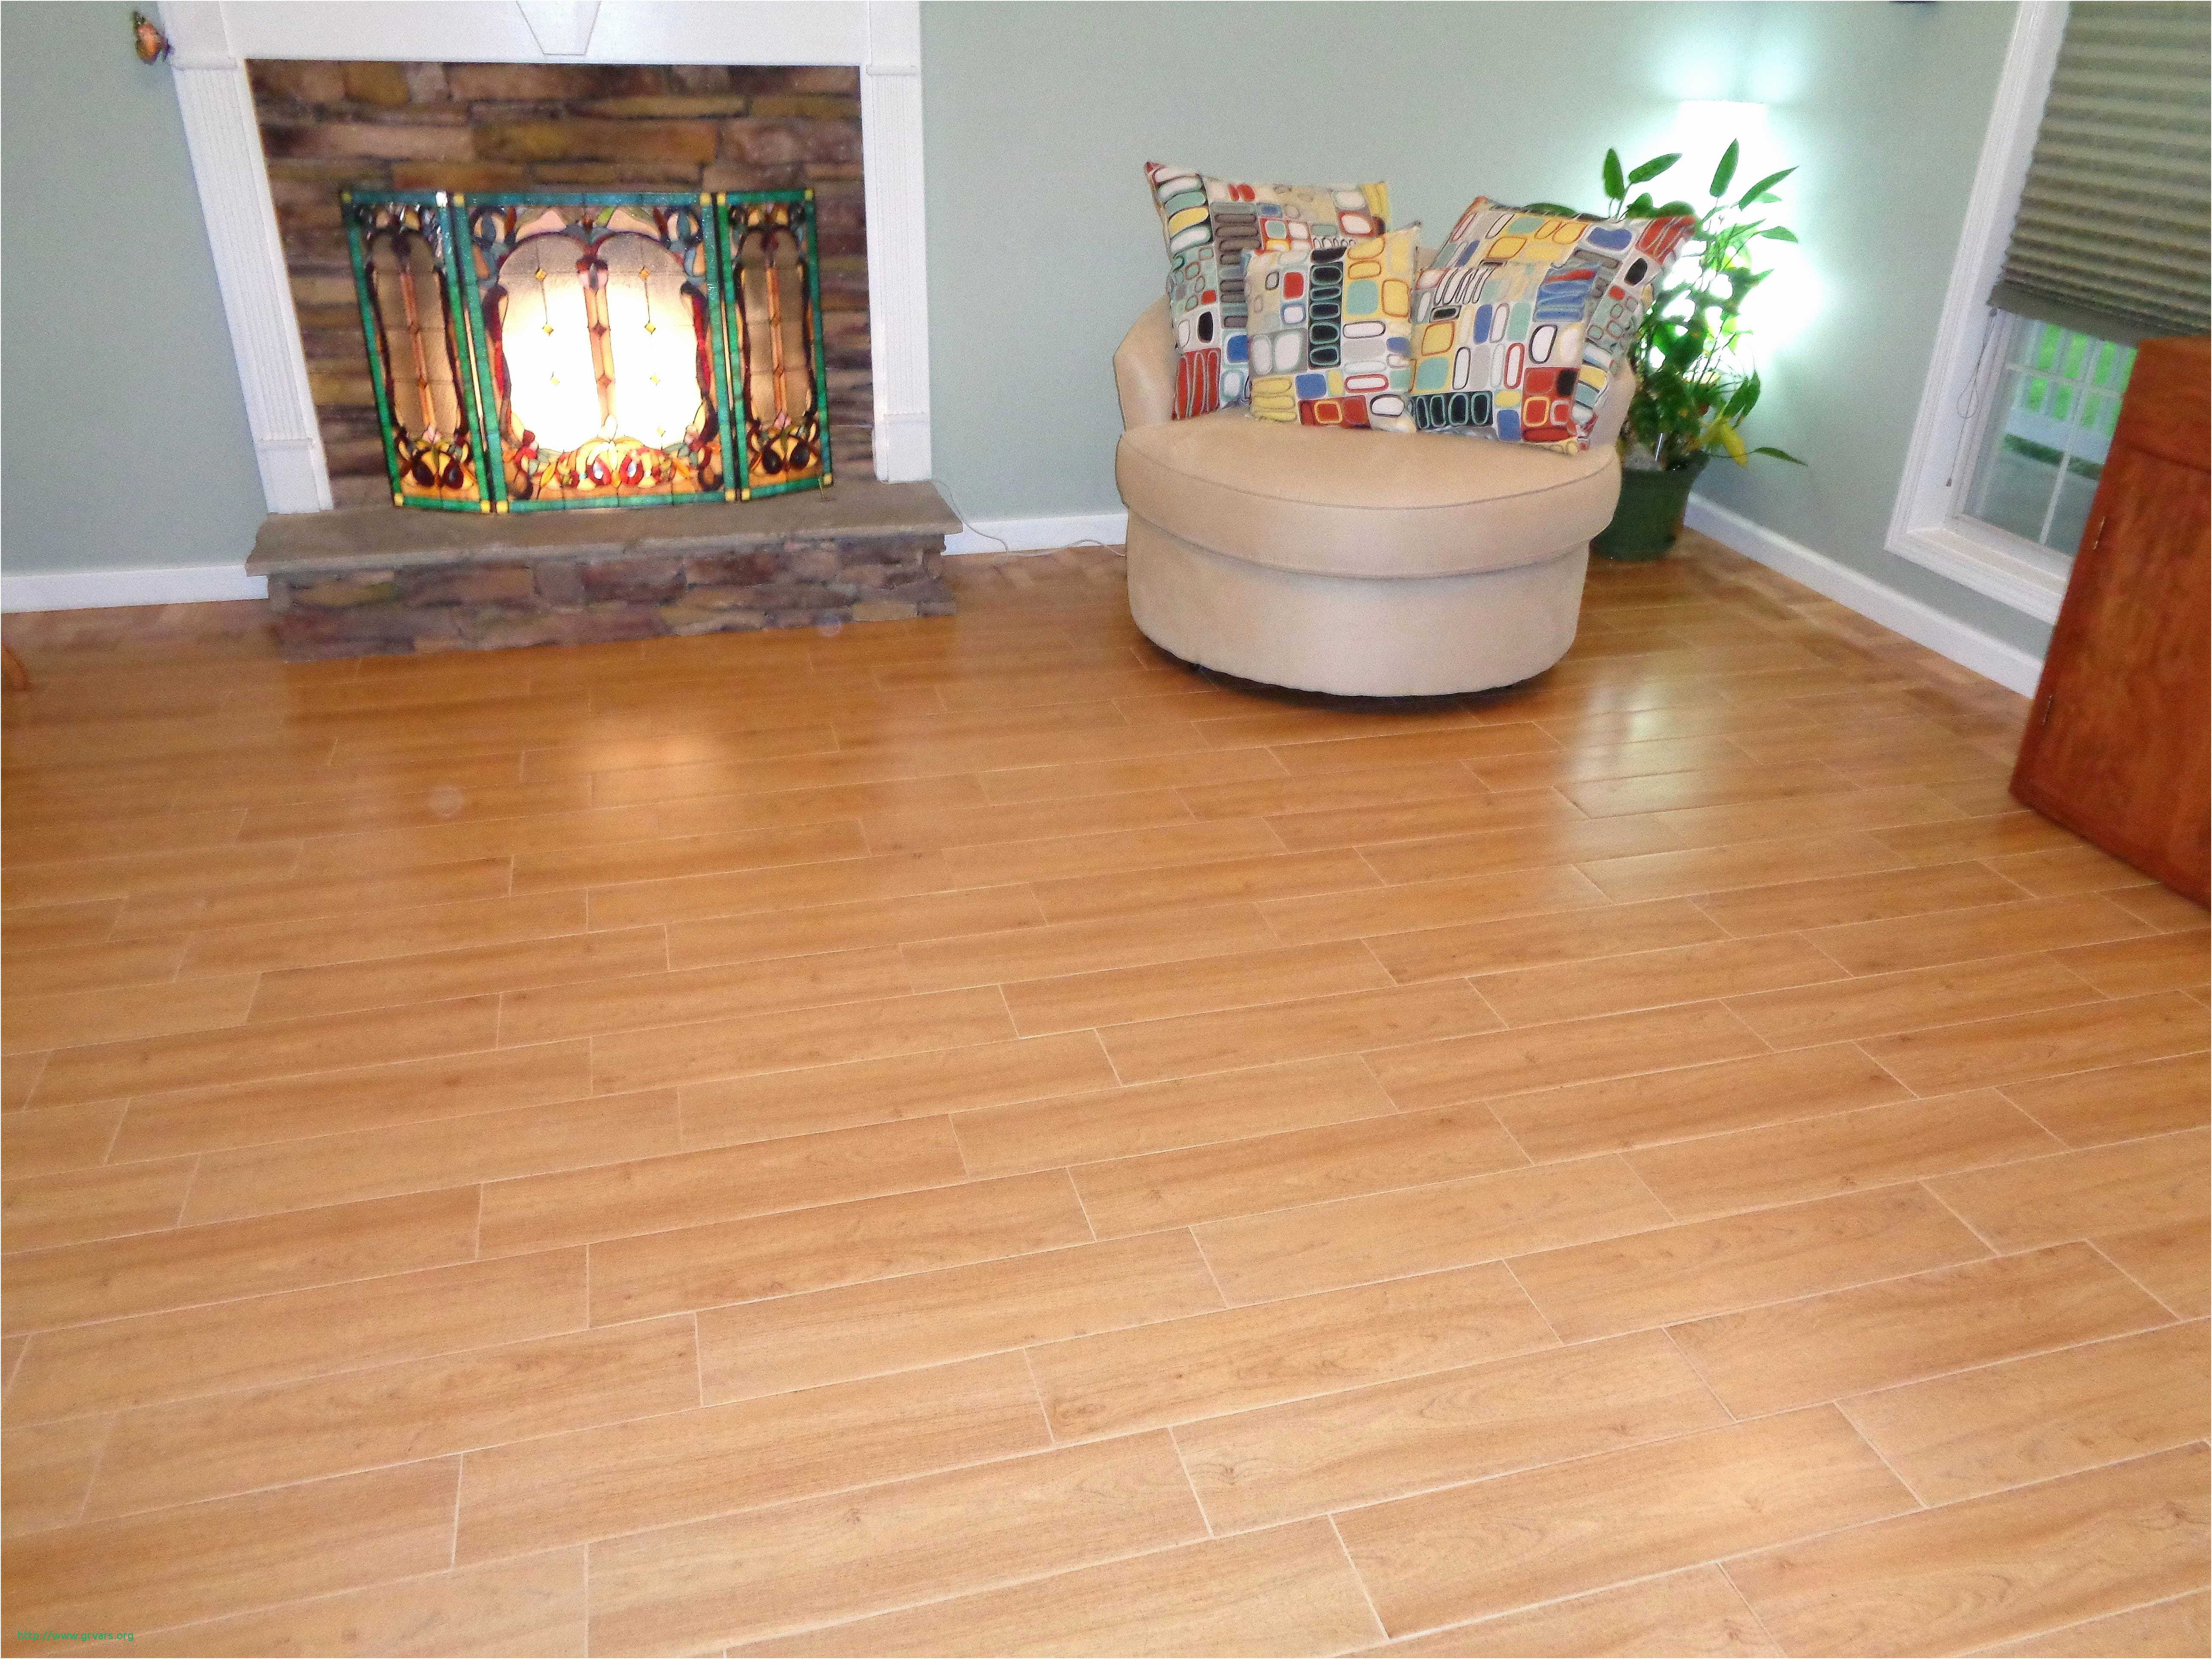 8 wide plank hardwood flooring of 20 impressionnant cheapest place to buy hardwood flooring ideas blog within cheapest place to buy hardwood flooring inspirant laminated wooden flooring prices guide to solid hardwood floors